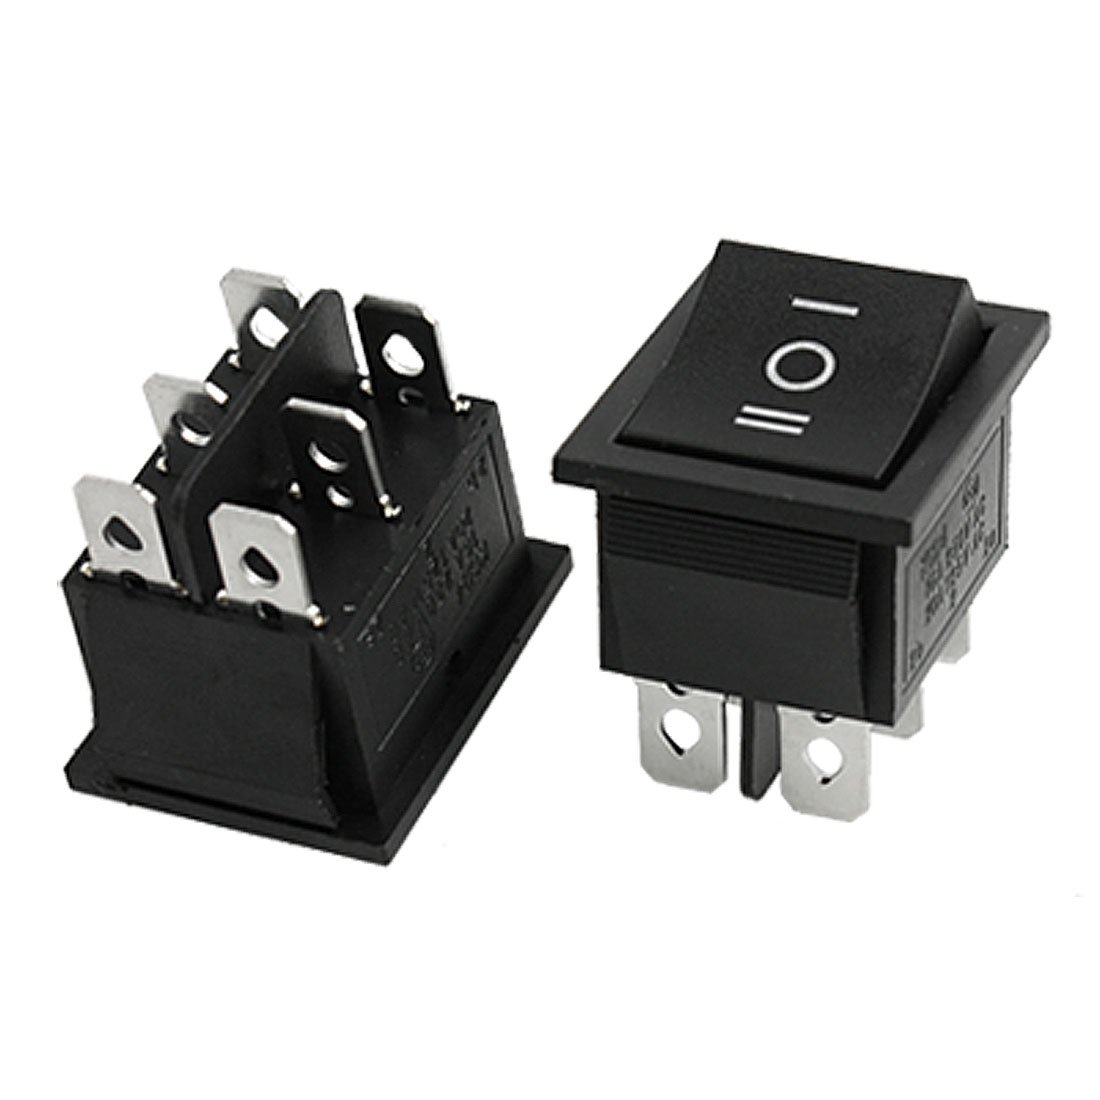 2pcs 6 Pin DPDT ON OFF ON 3 Position Snap in Rocker Switch 15A/250V ...